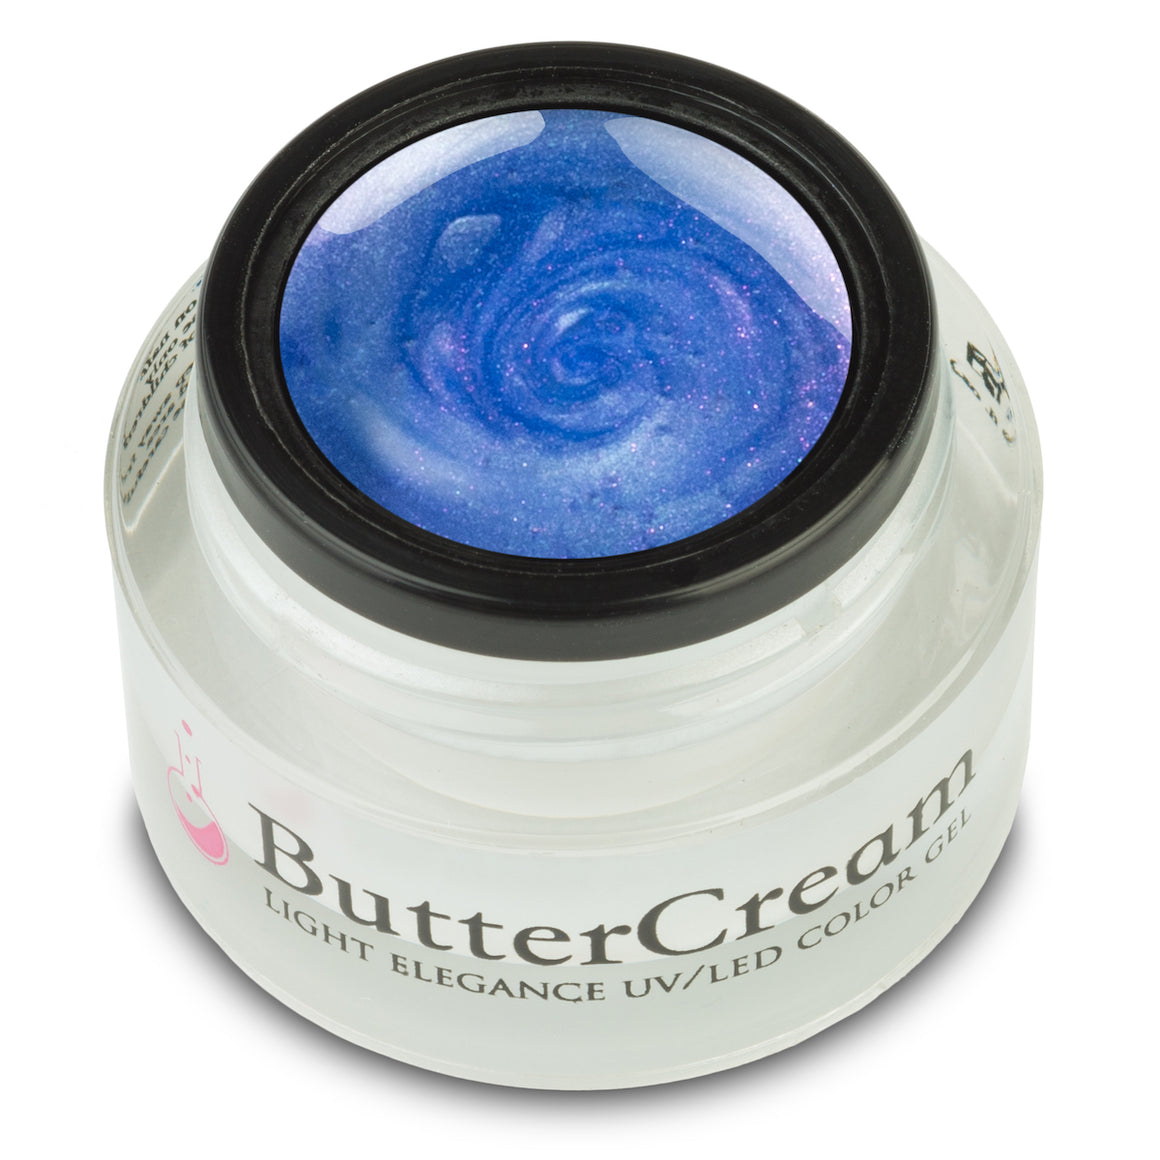 Sisterhood ButterCream Color Gel